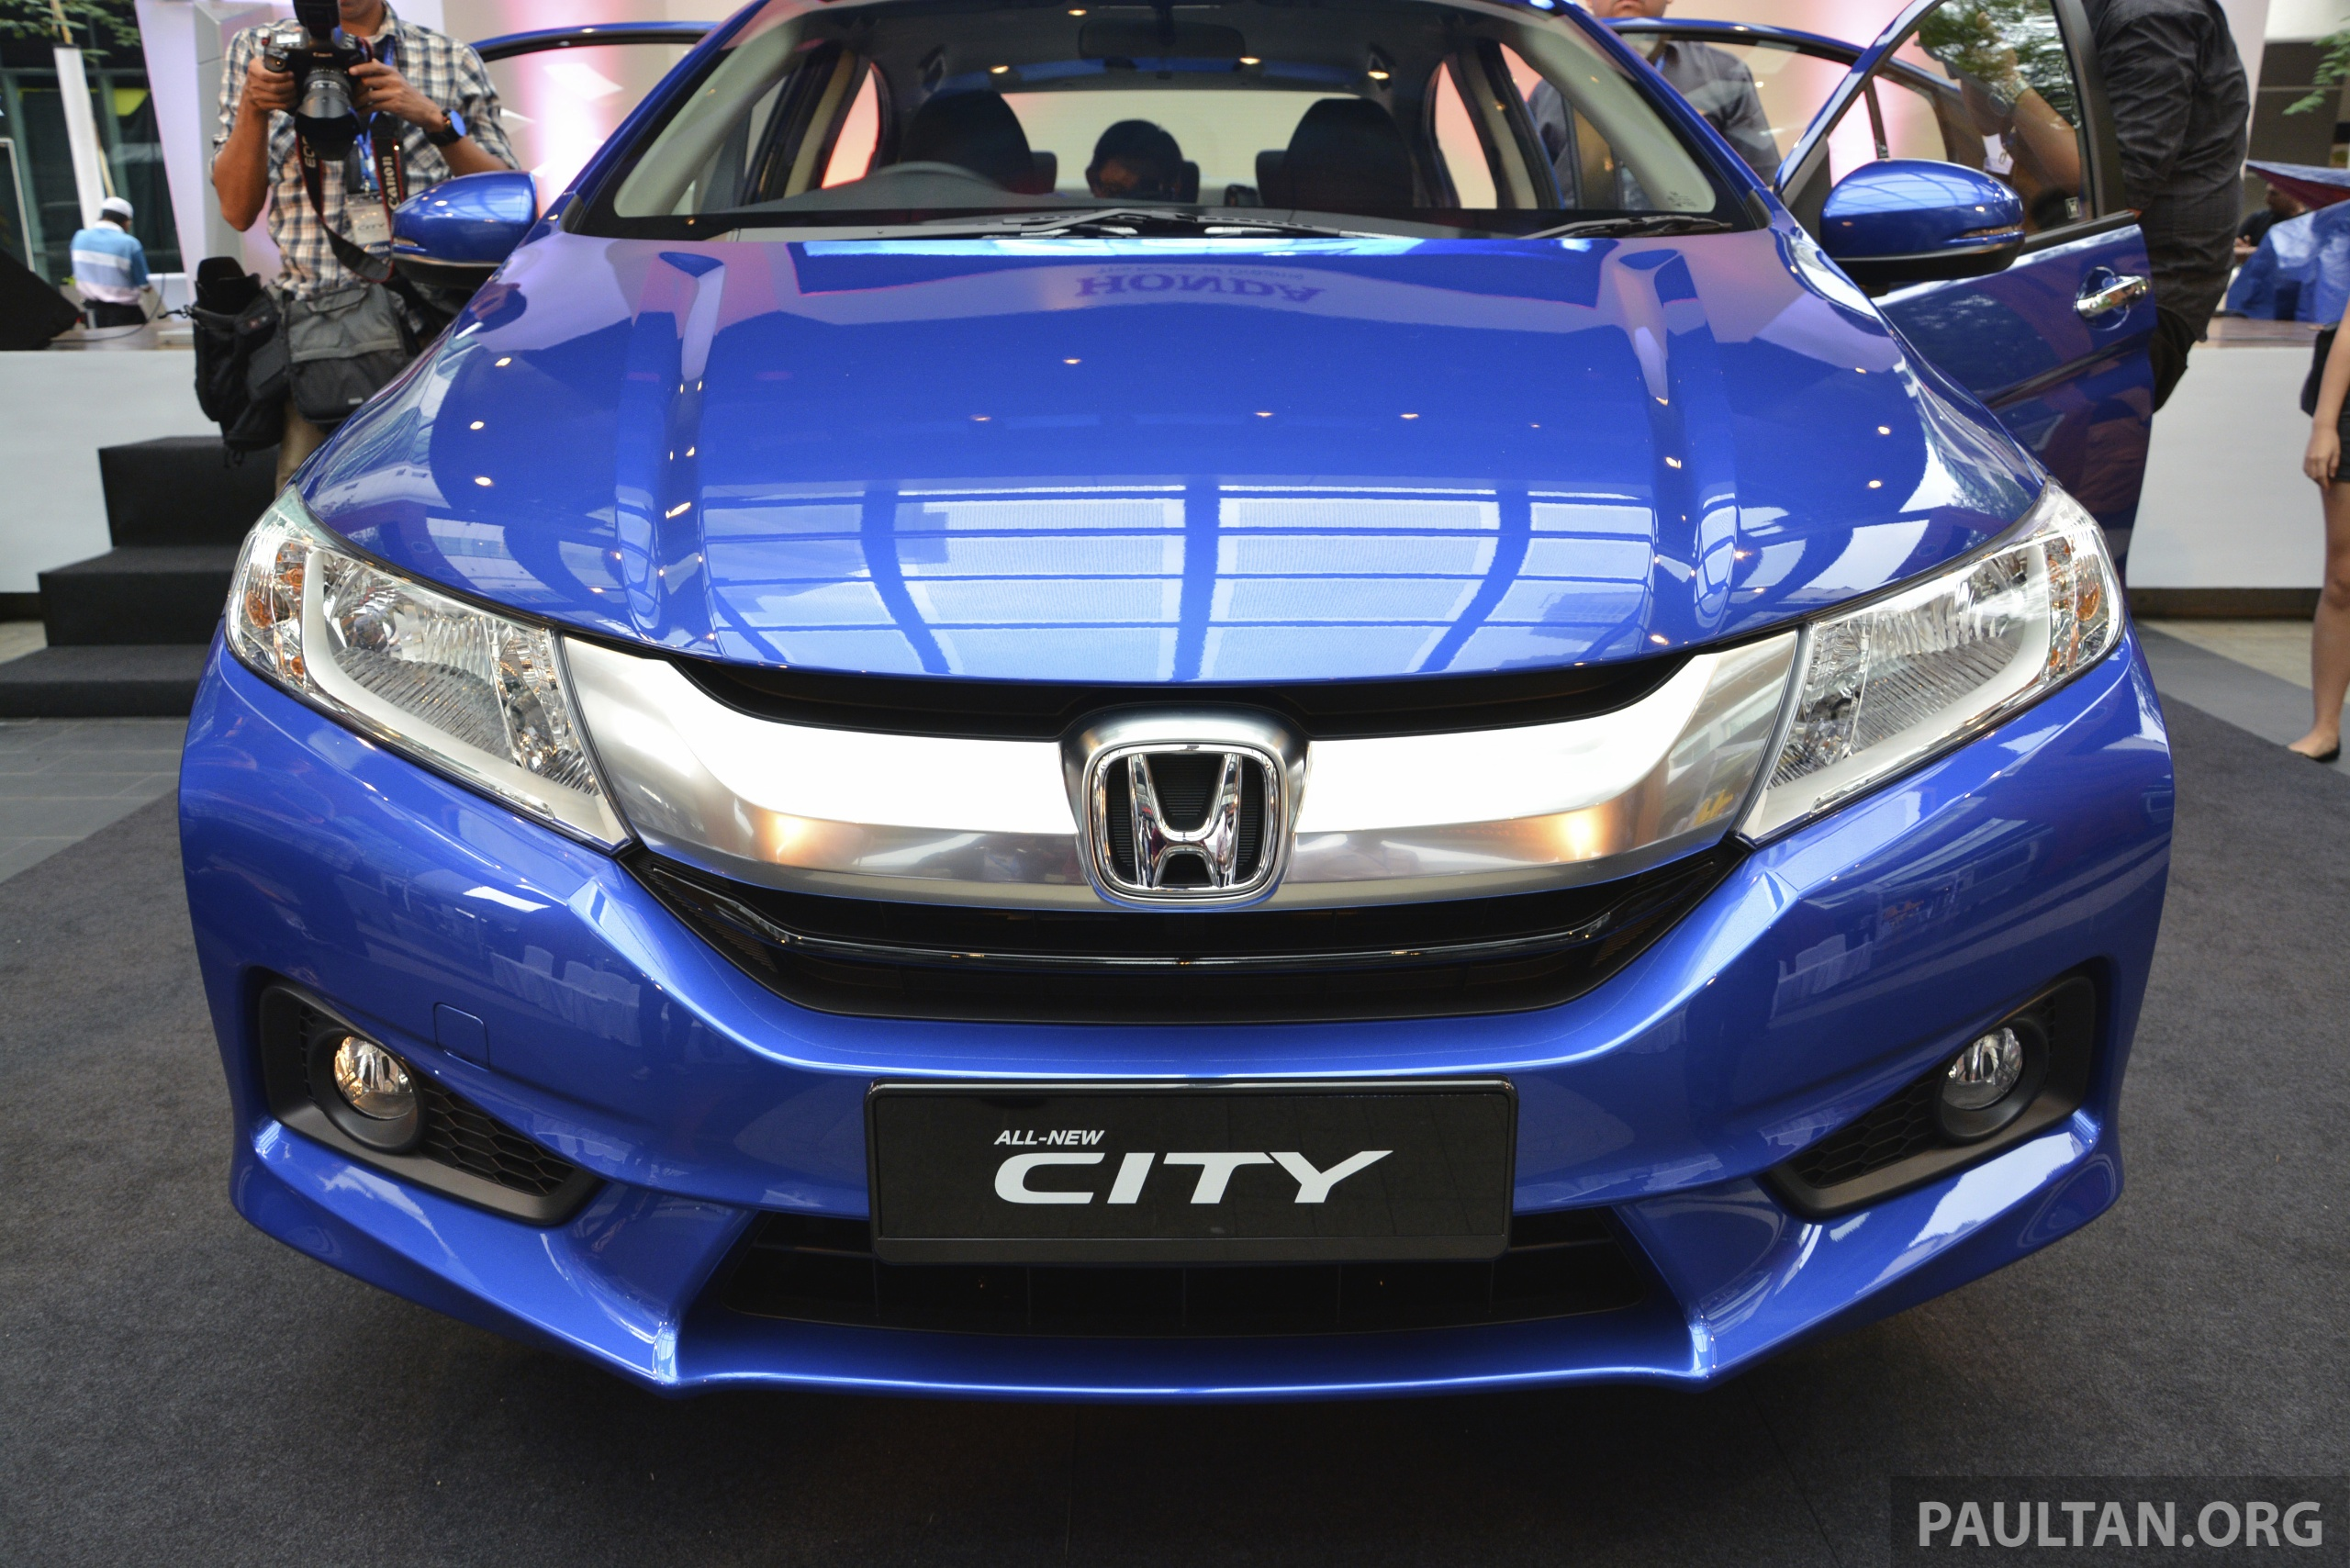 2014 Honda City Launched In Malaysia From Rm76k Paul Tan